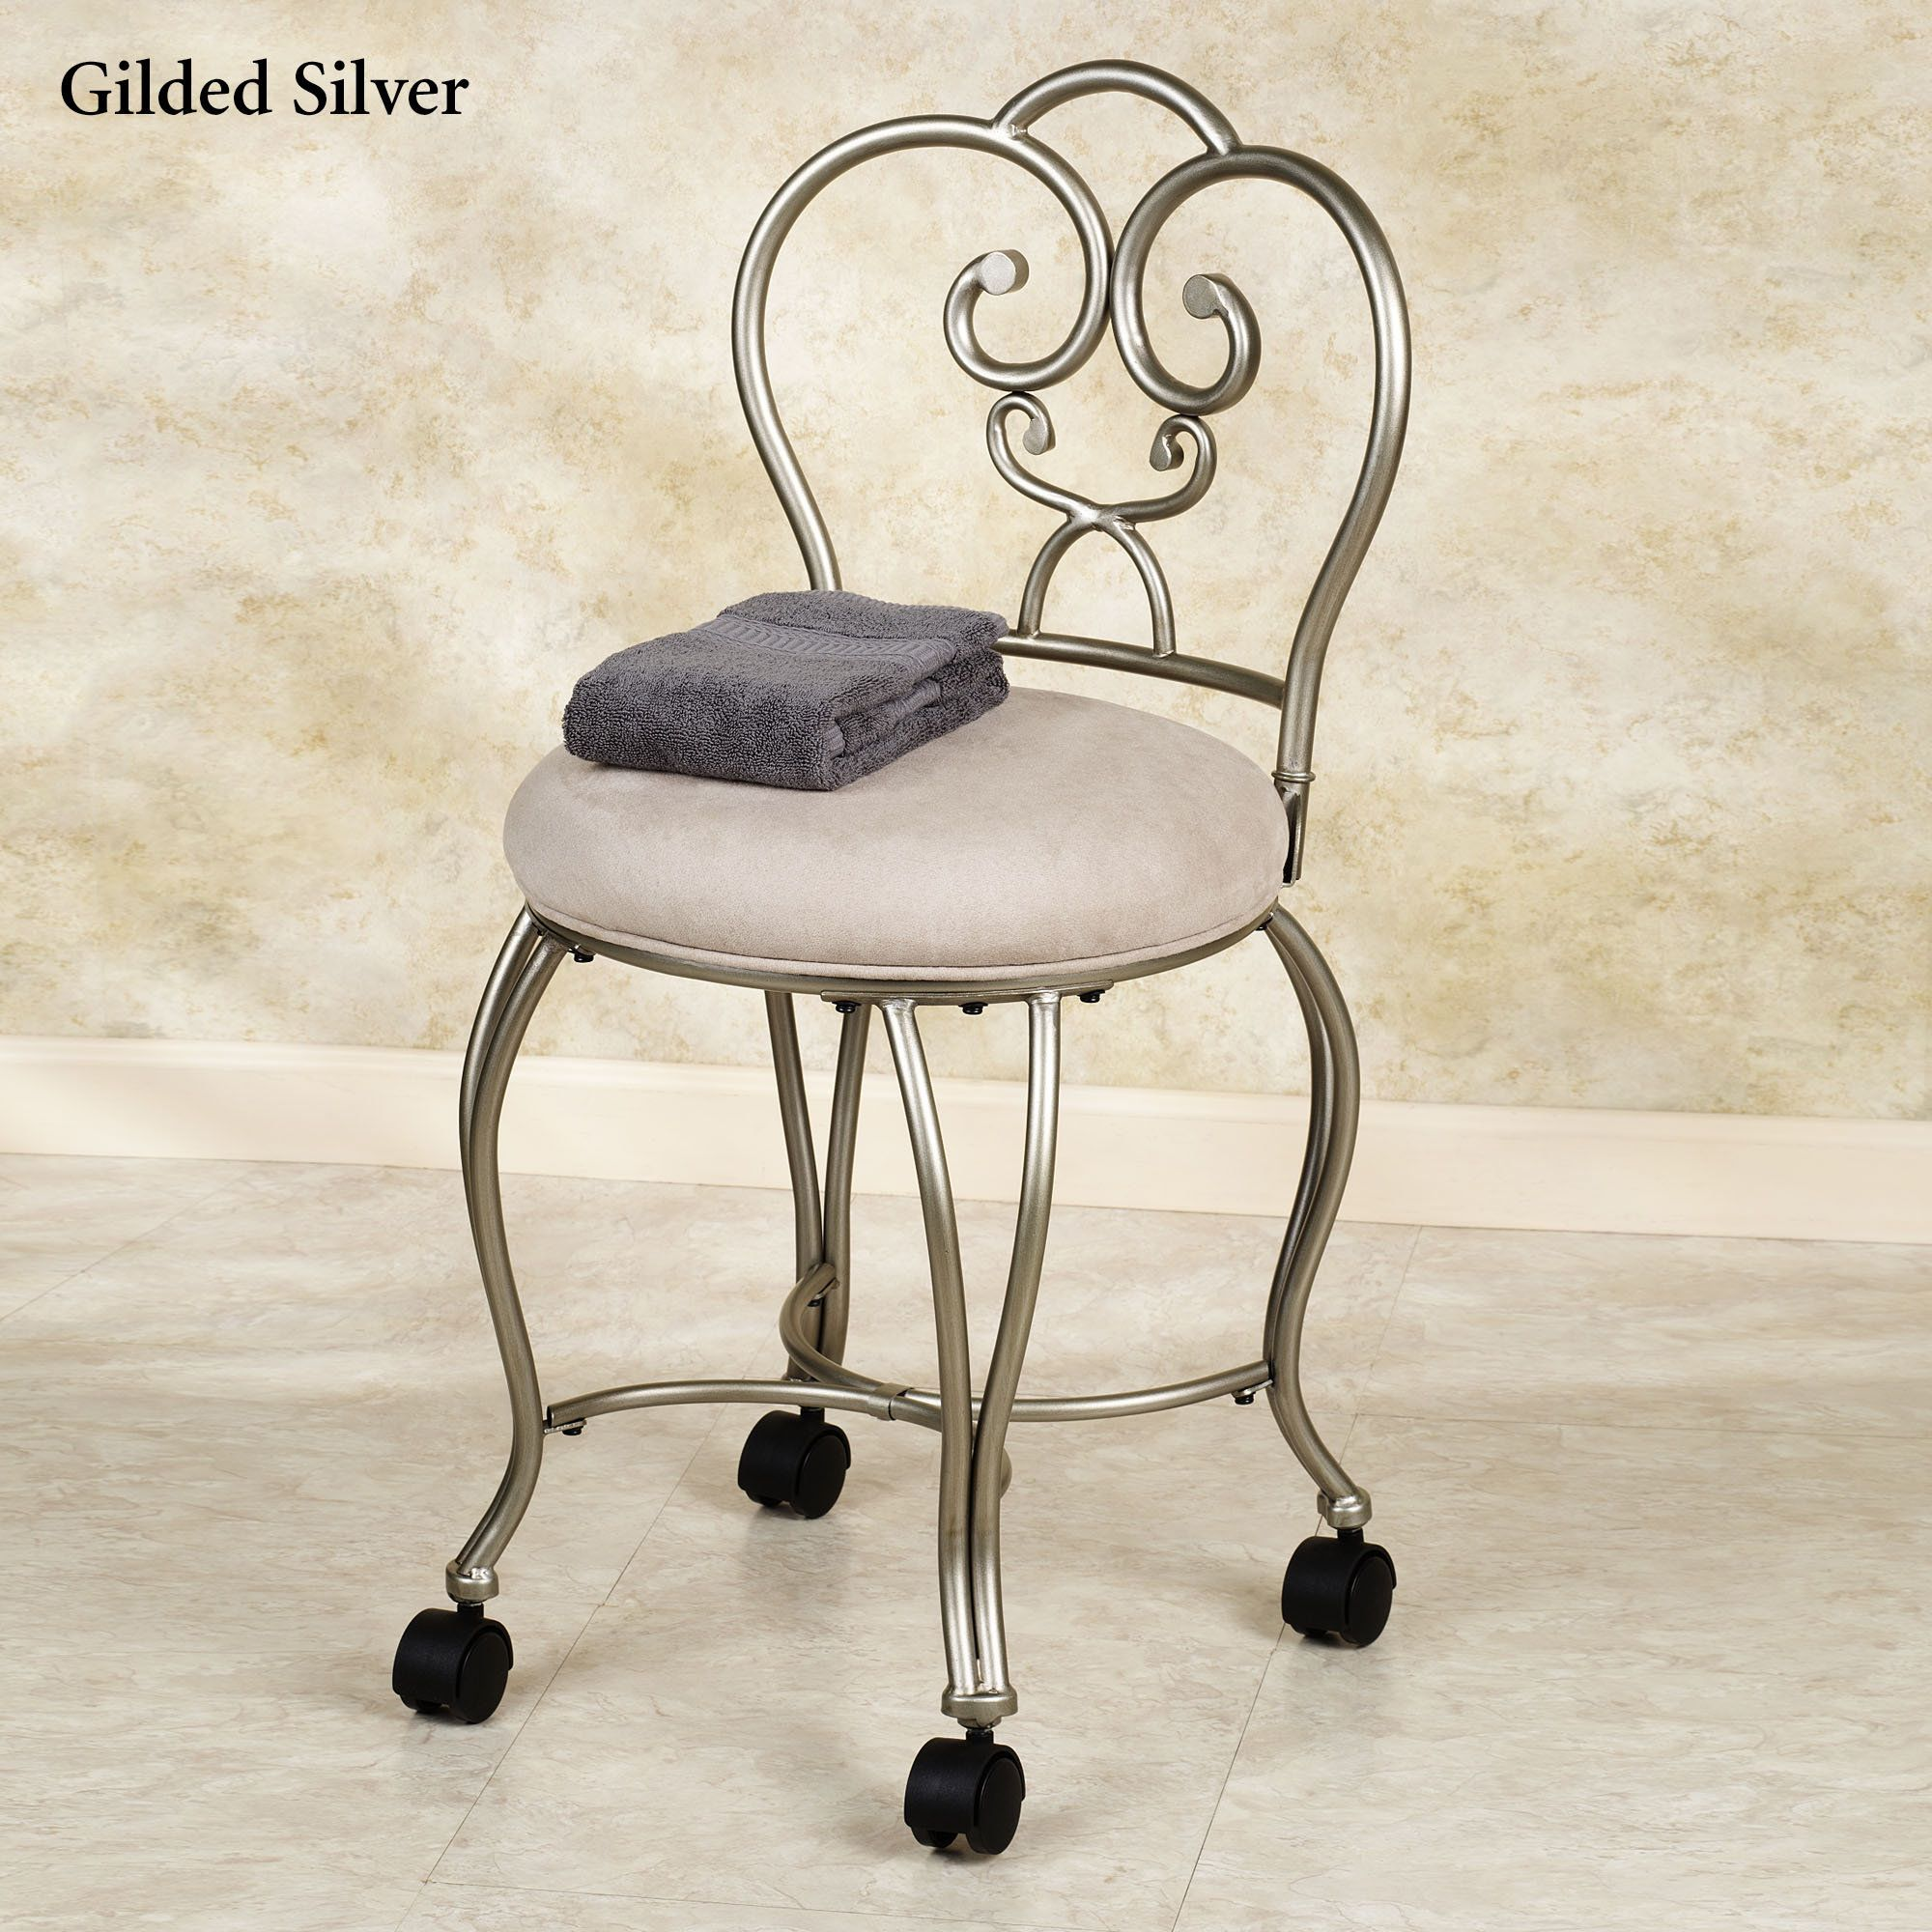 Luxury Vanity Chair or Stool